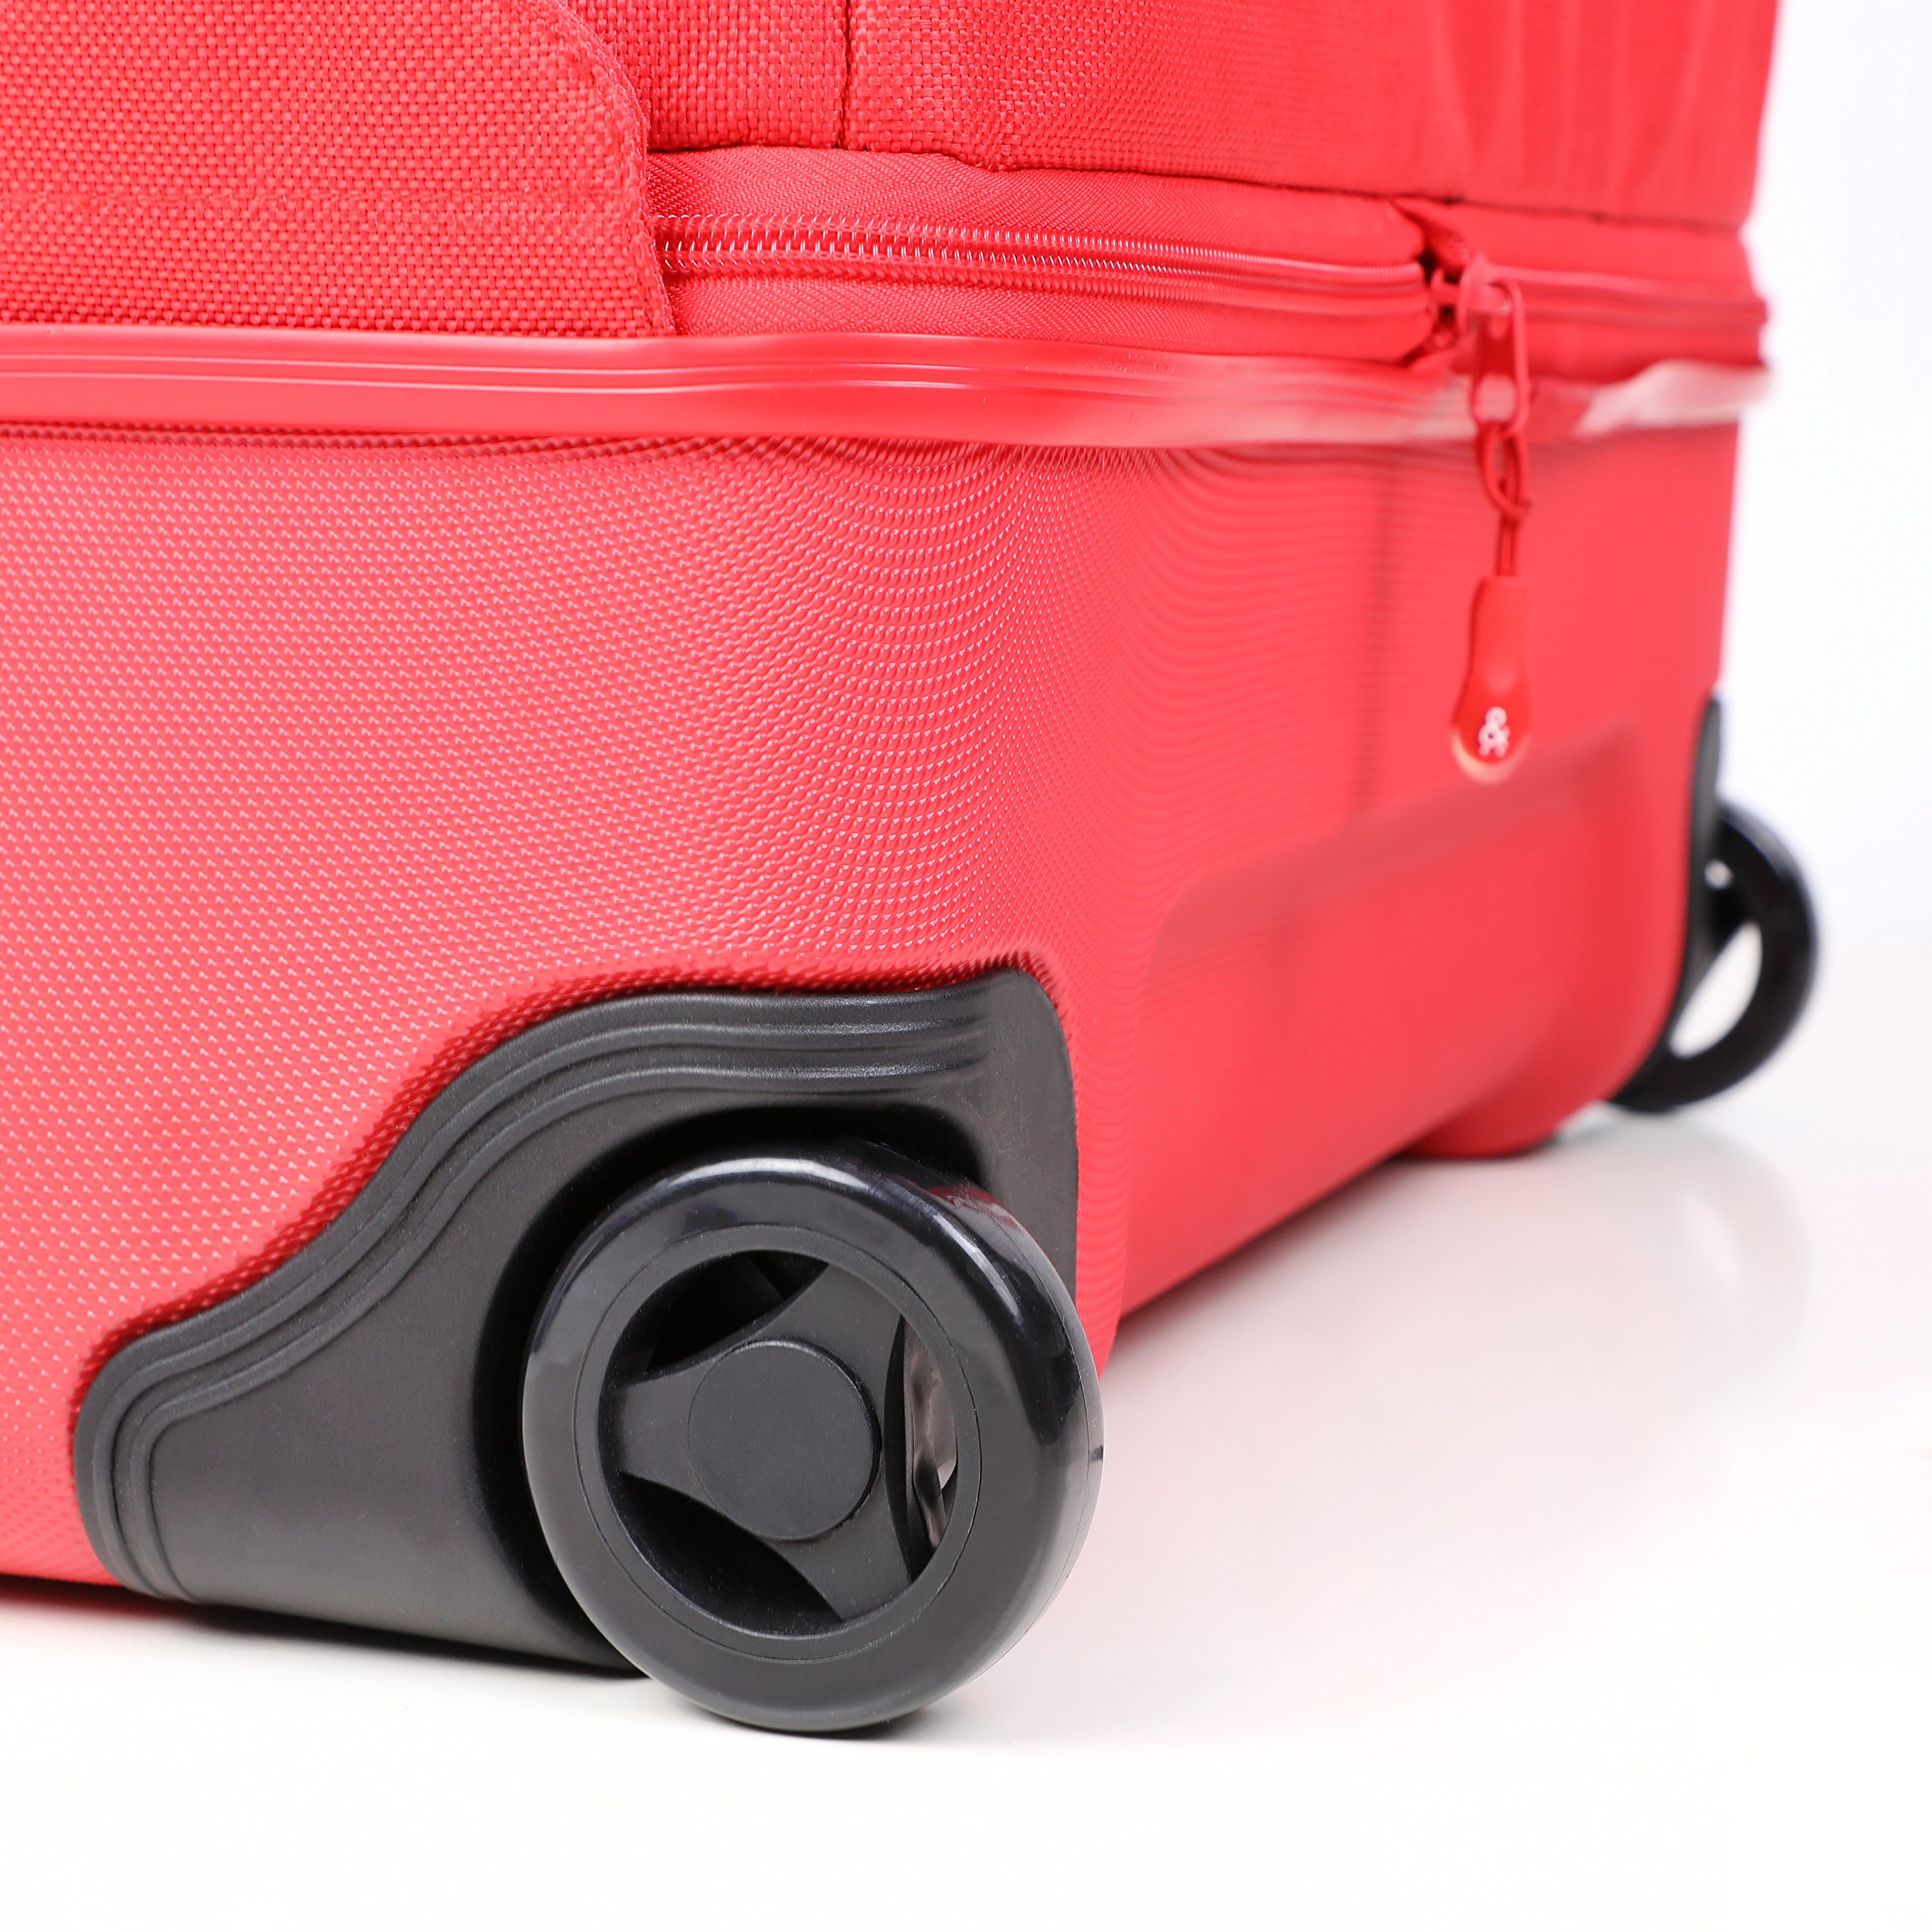 phil&teds Travel Bag for phil&teds, Mountain Buggy, Baby Jogger & britax Strollers by phil&teds (Image #3)